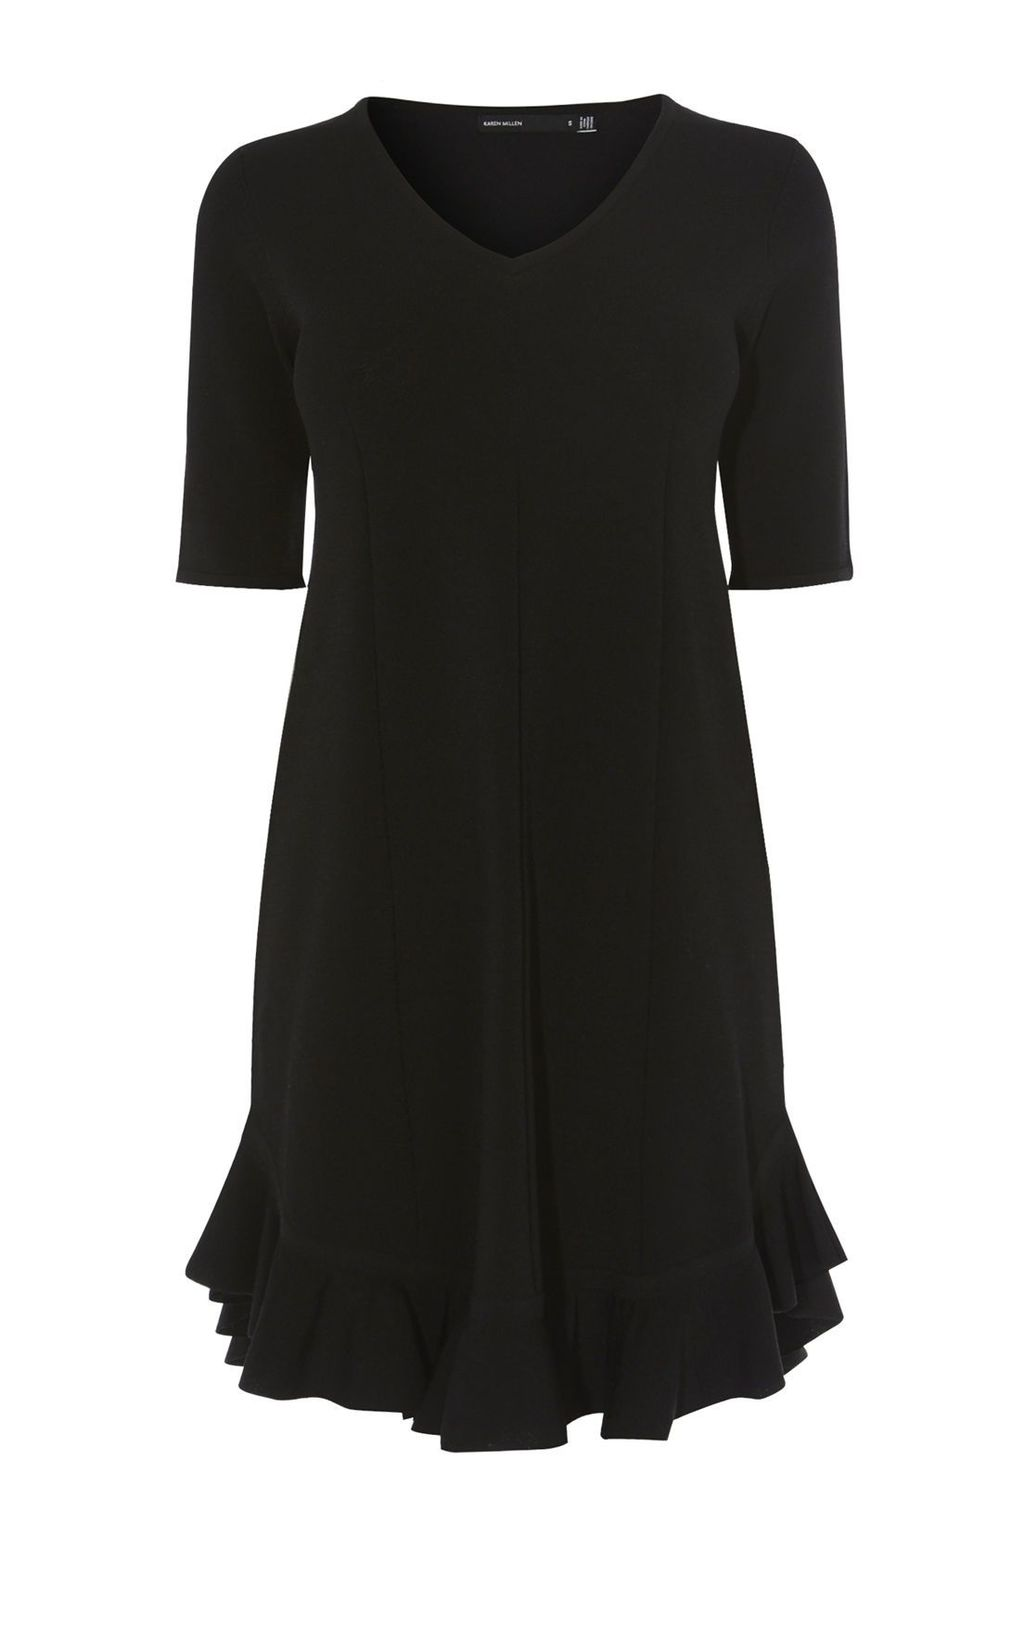 Frill Hem Dress, Black - style: shift; neckline: v-neck; pattern: plain; hip detail: draws attention to hips; predominant colour: black; occasions: evening; length: on the knee; fit: body skimming; sleeve length: short sleeve; sleeve style: standard; pattern type: fabric; texture group: jersey - stretchy/drapey; fibres: viscose/rayon - mix; season: s/s 2016; wardrobe: event